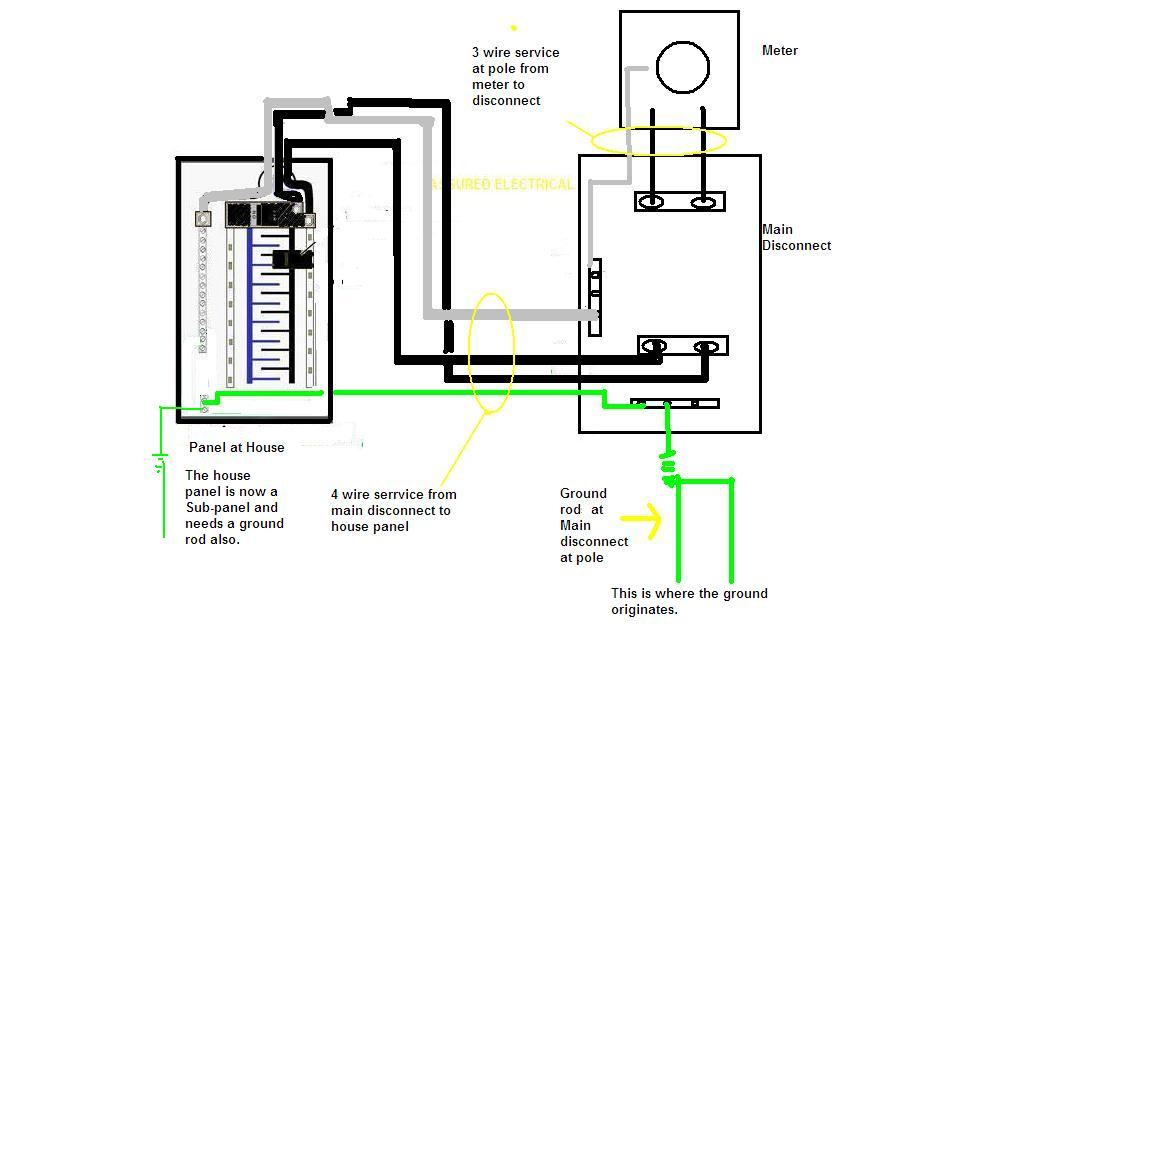 3 Wire Sub Panel Wiring Diagrams likewise 200   Disconnect Wiring Diagram further 200   Panel Wiring 2 Subpanel Diagram further 3 Phase   Meter Wiring Diagram likewise 100   Electrical Meter. on wiring a disconnect at 200 amp service